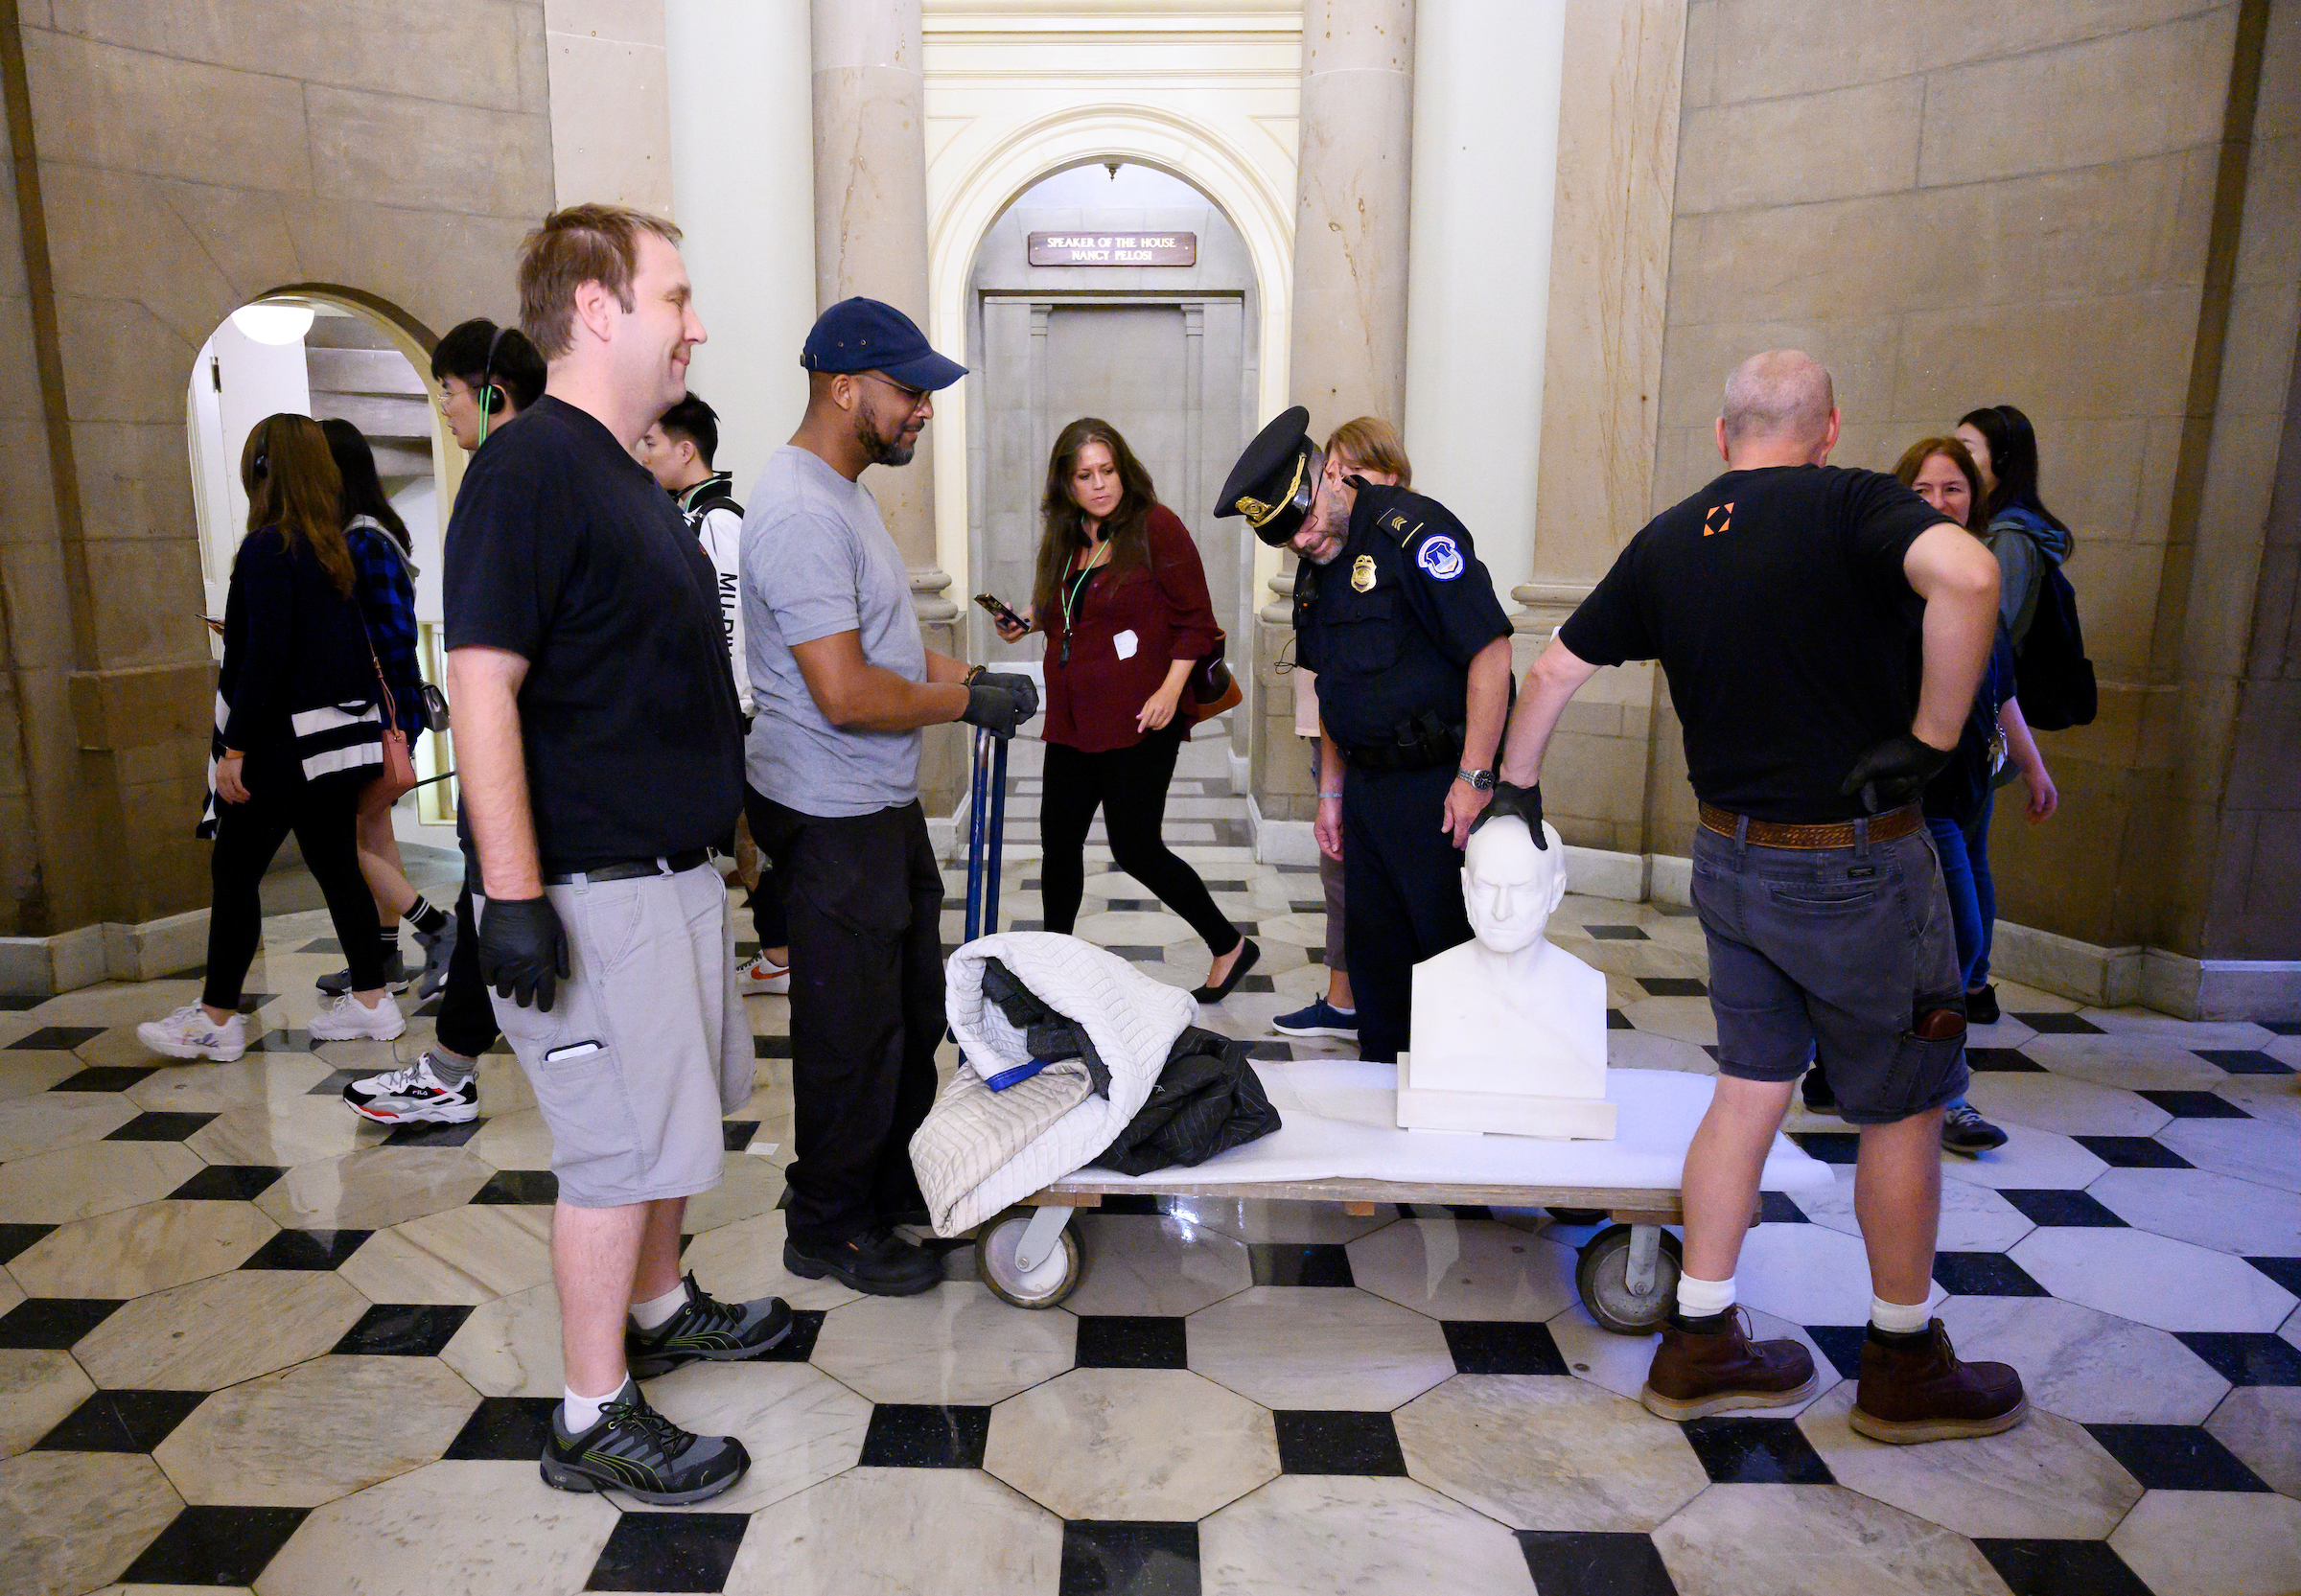 UNITED STATES - SEPTEMBER 30: Workers move the bust of John Quincy Adams through the Capitol past Speaker Pelosi's office on Monday, Sept. 30, 2019. (Photo By Bill Clark/CQ Roll Call)